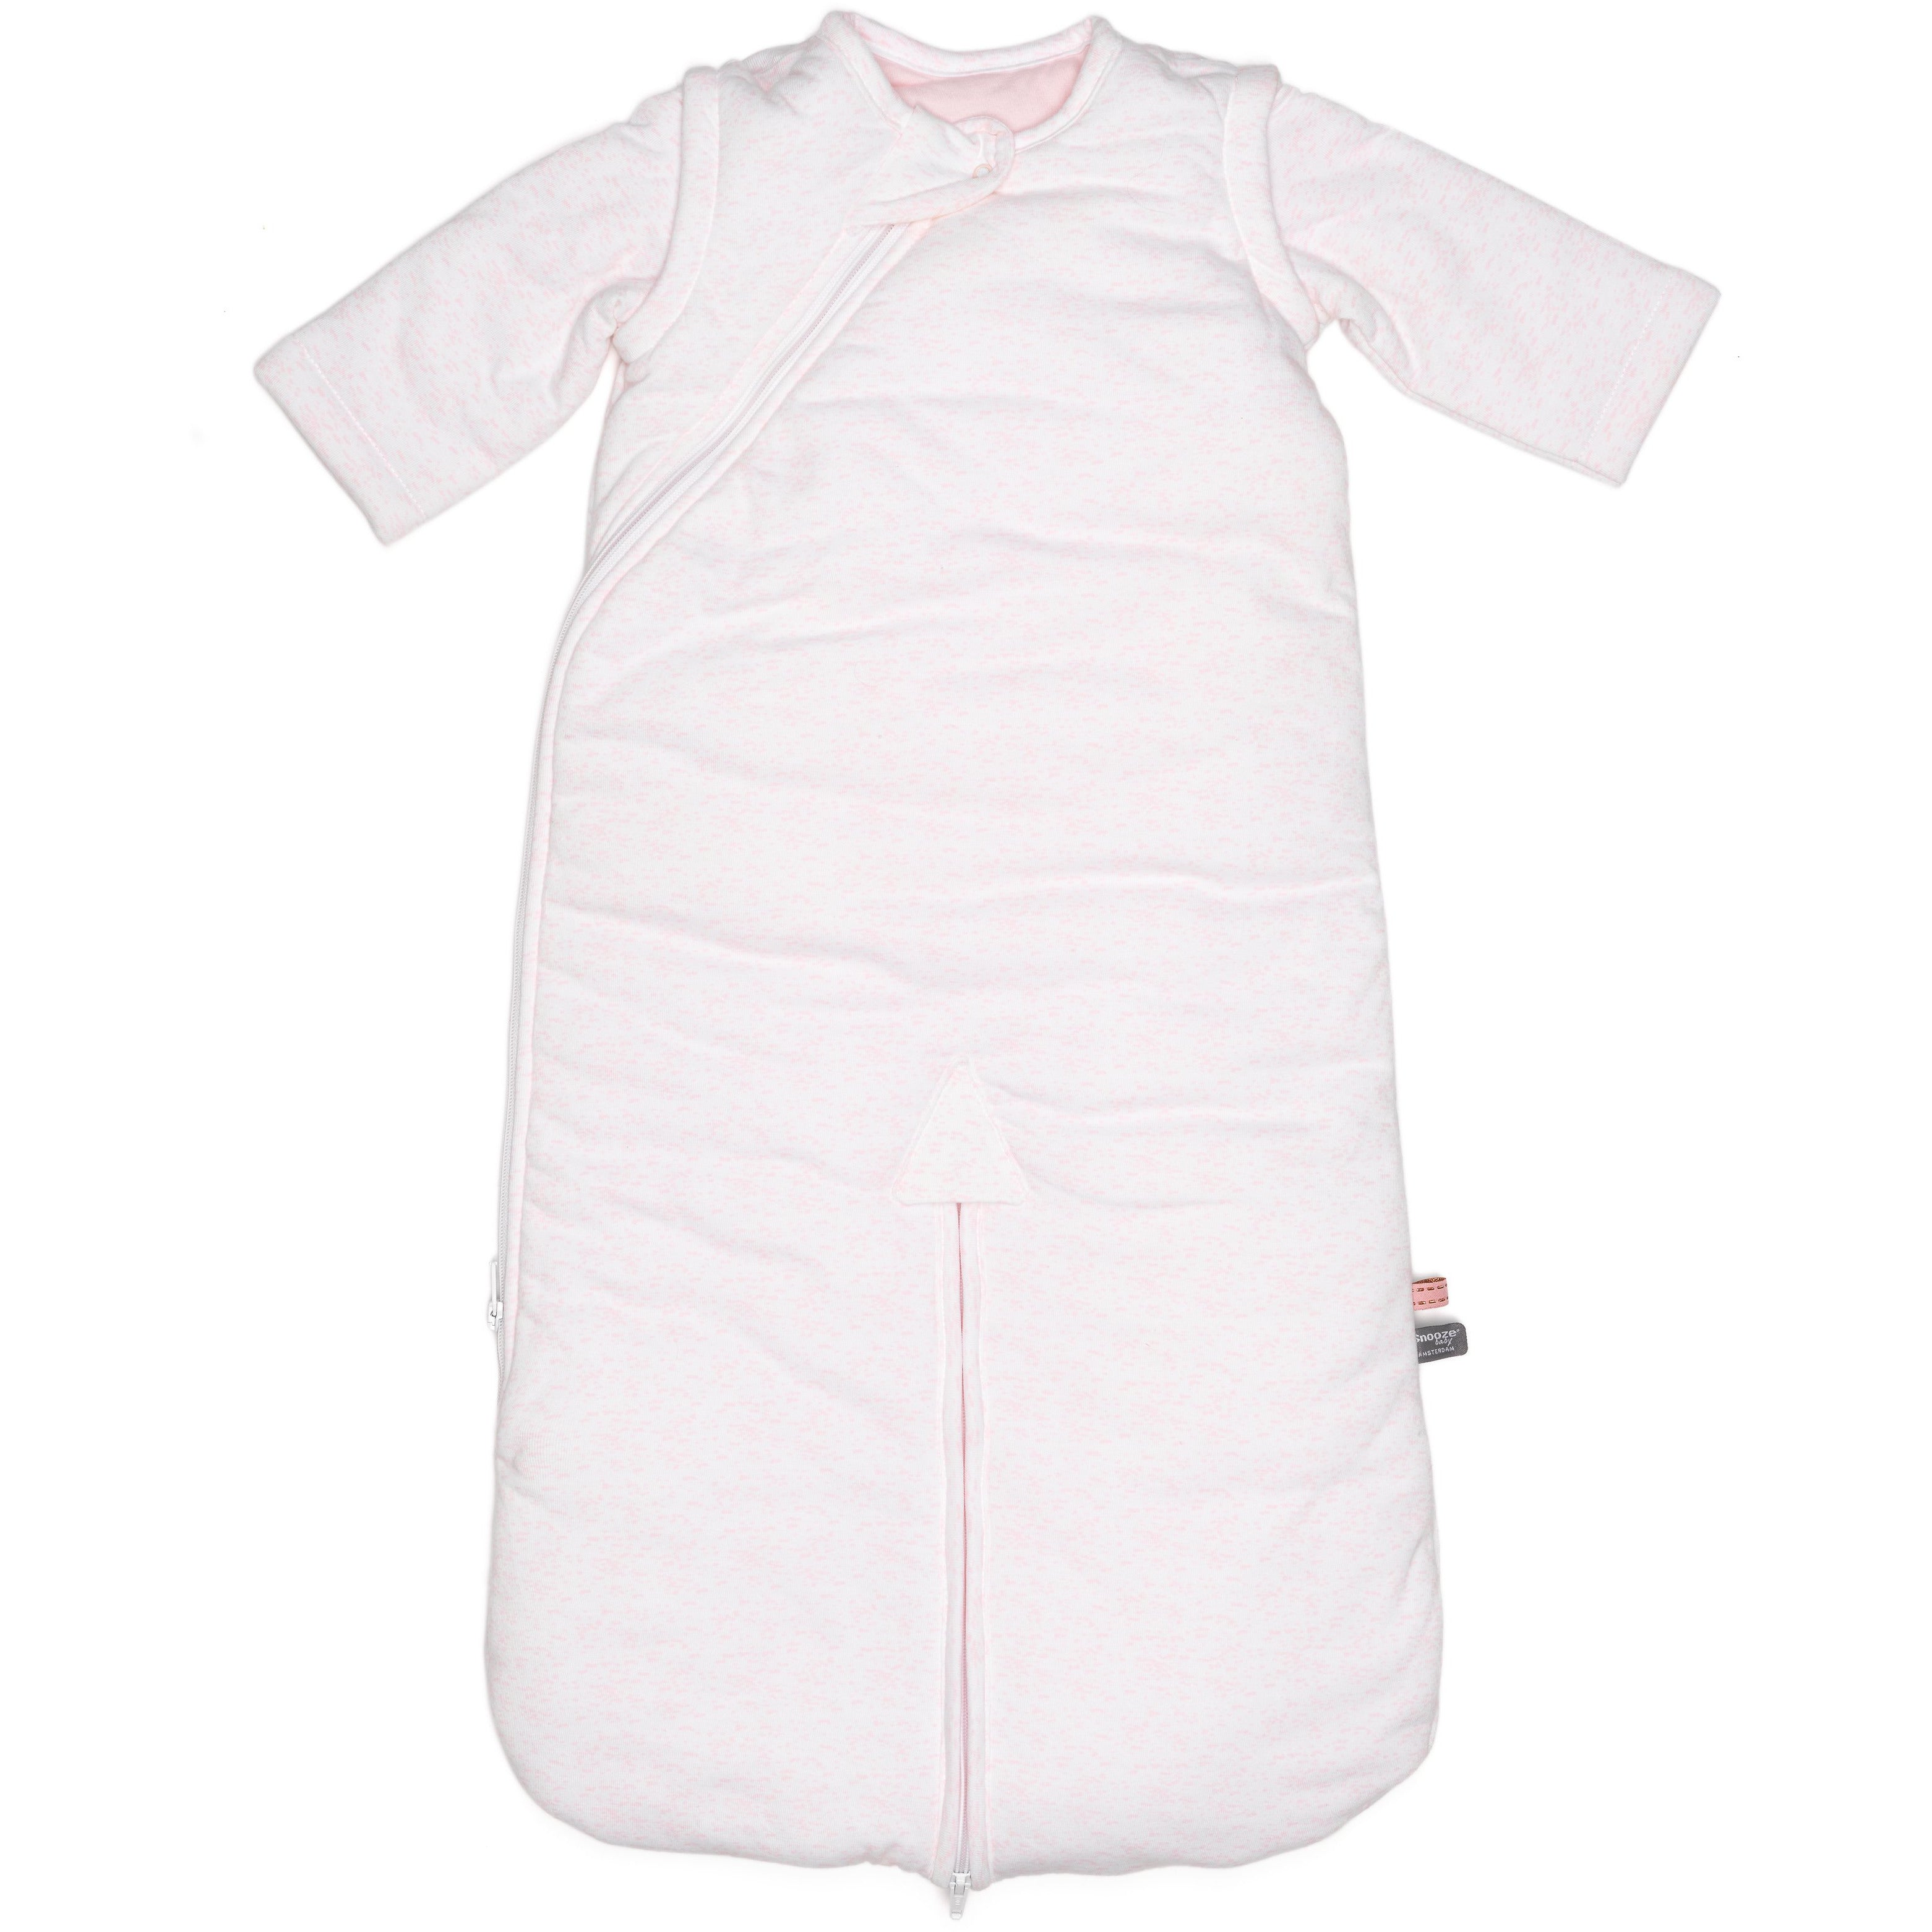 Sleepsuit 4 seasons | Orchid Blush 3-9 months